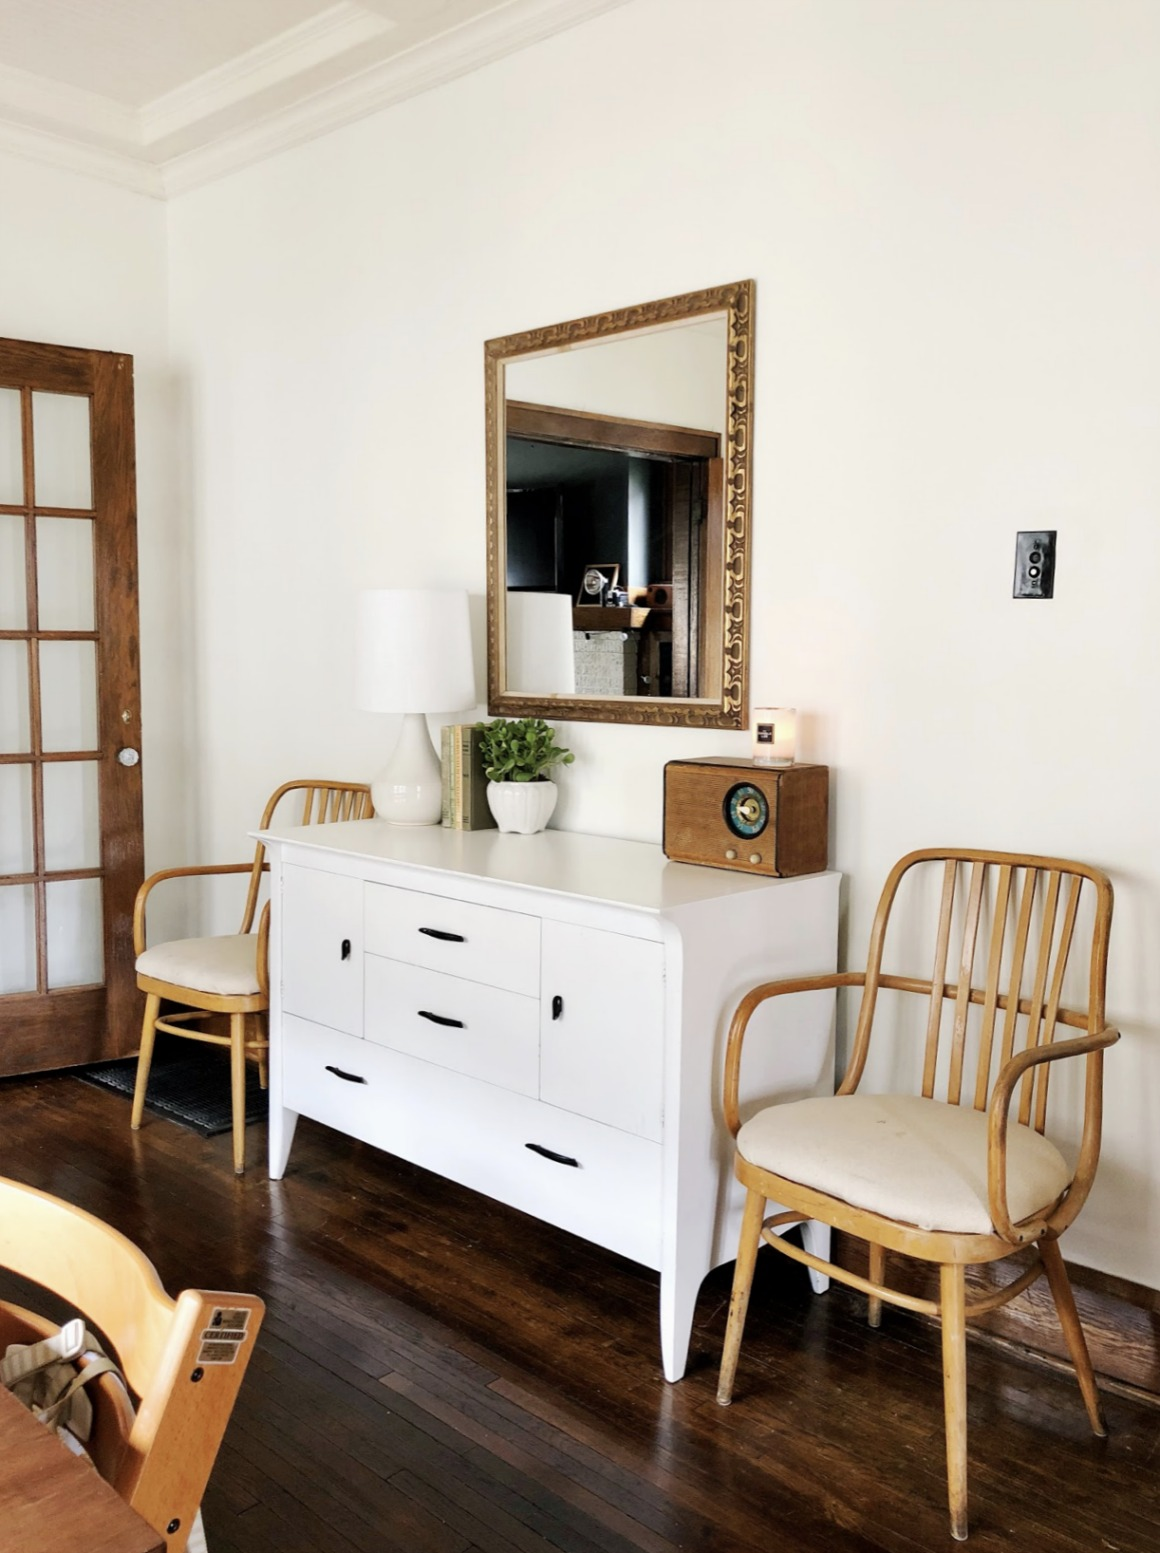 Small Space Living- See inside this Craftsman Style Home